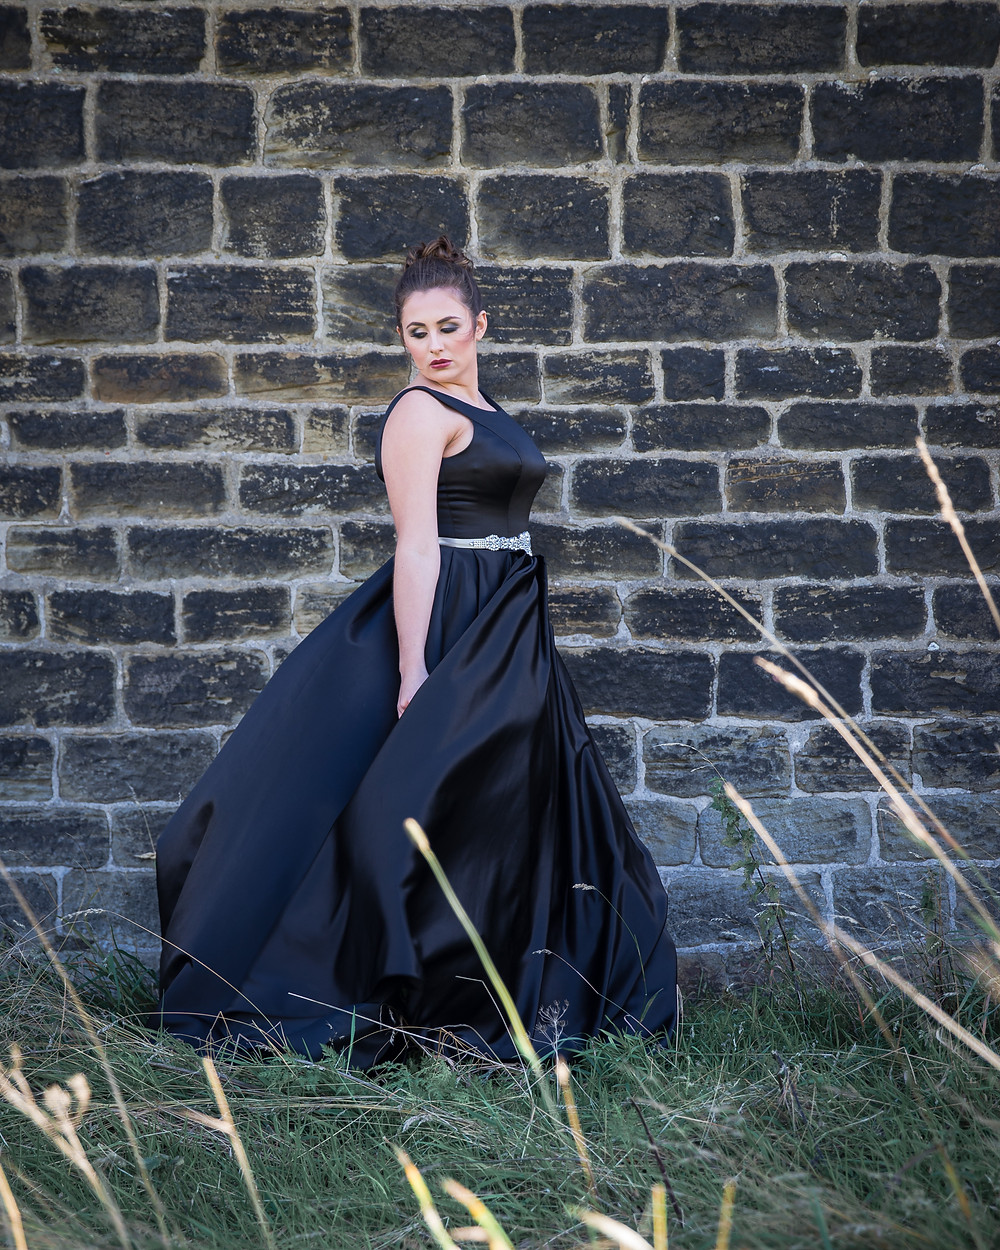 A model wearing black satin dress against a black brick wall